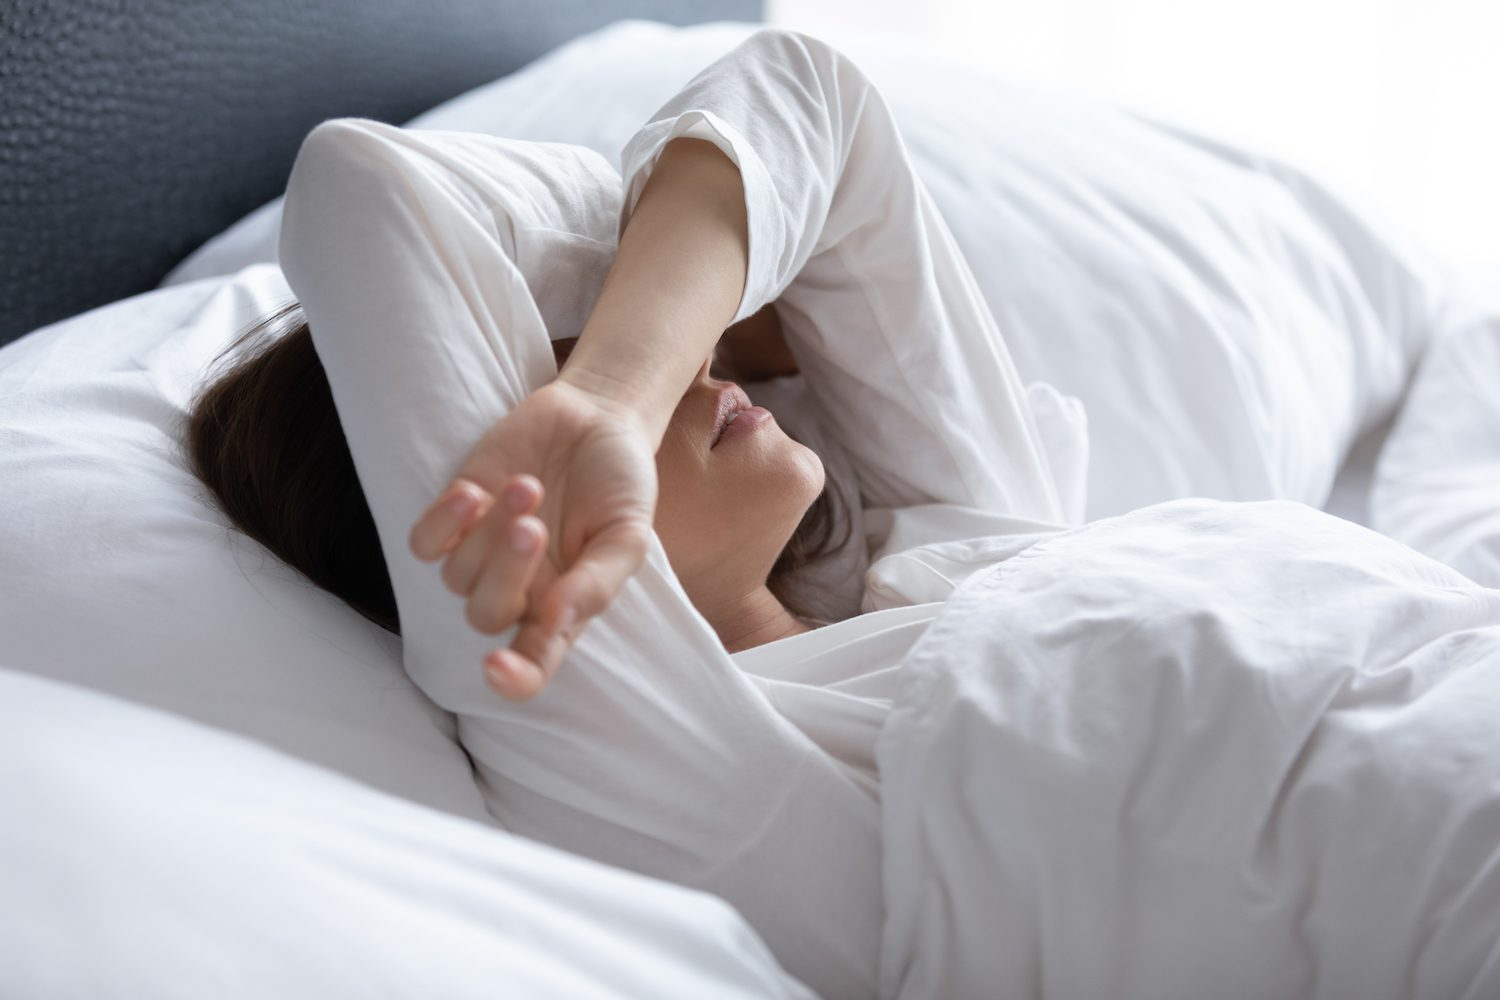 Woman waking up after bad dream, covering eyes